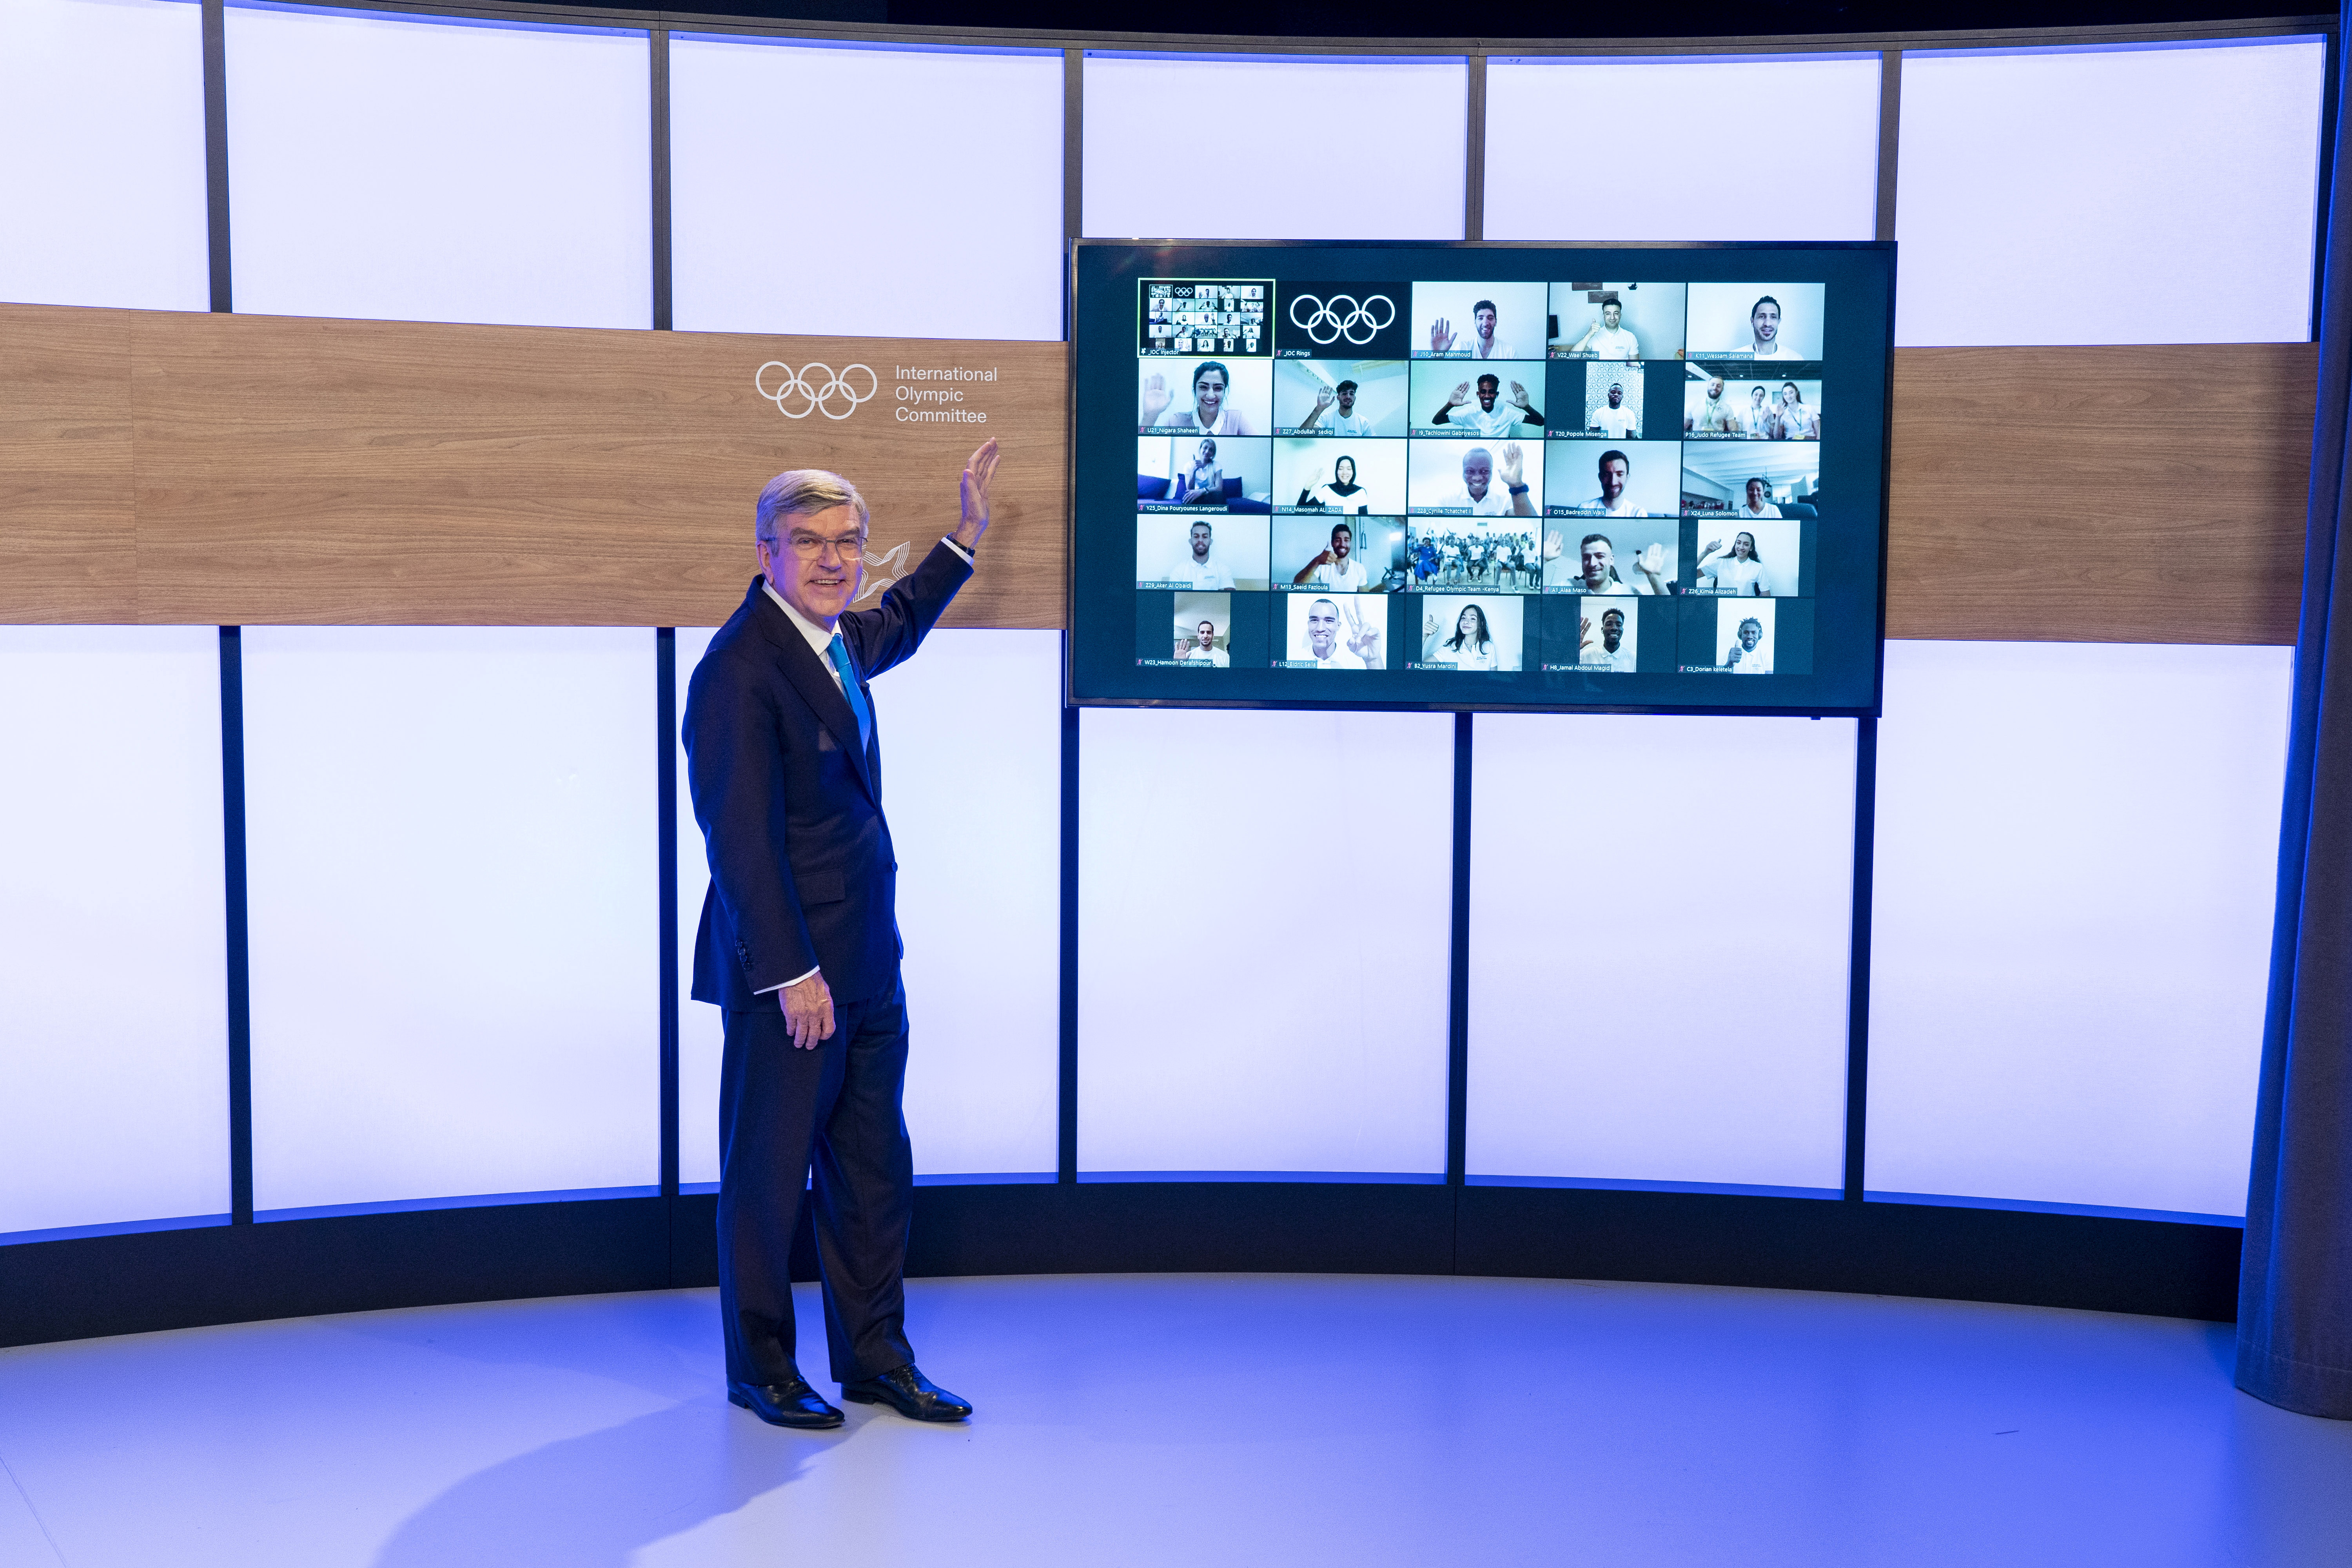 International Olympic Committee President Thomas Bach announces the  IOC Refugee Team members for Tokyo 2020 in Lausanne, Switzerland, June 8, 2021. Greg Martin/IOC/Handout via REUTERS THIS IMAGE HAS BEEN SUPPLIED BY A THIRD PARTY. NO RESALES. NO ARCHIVES